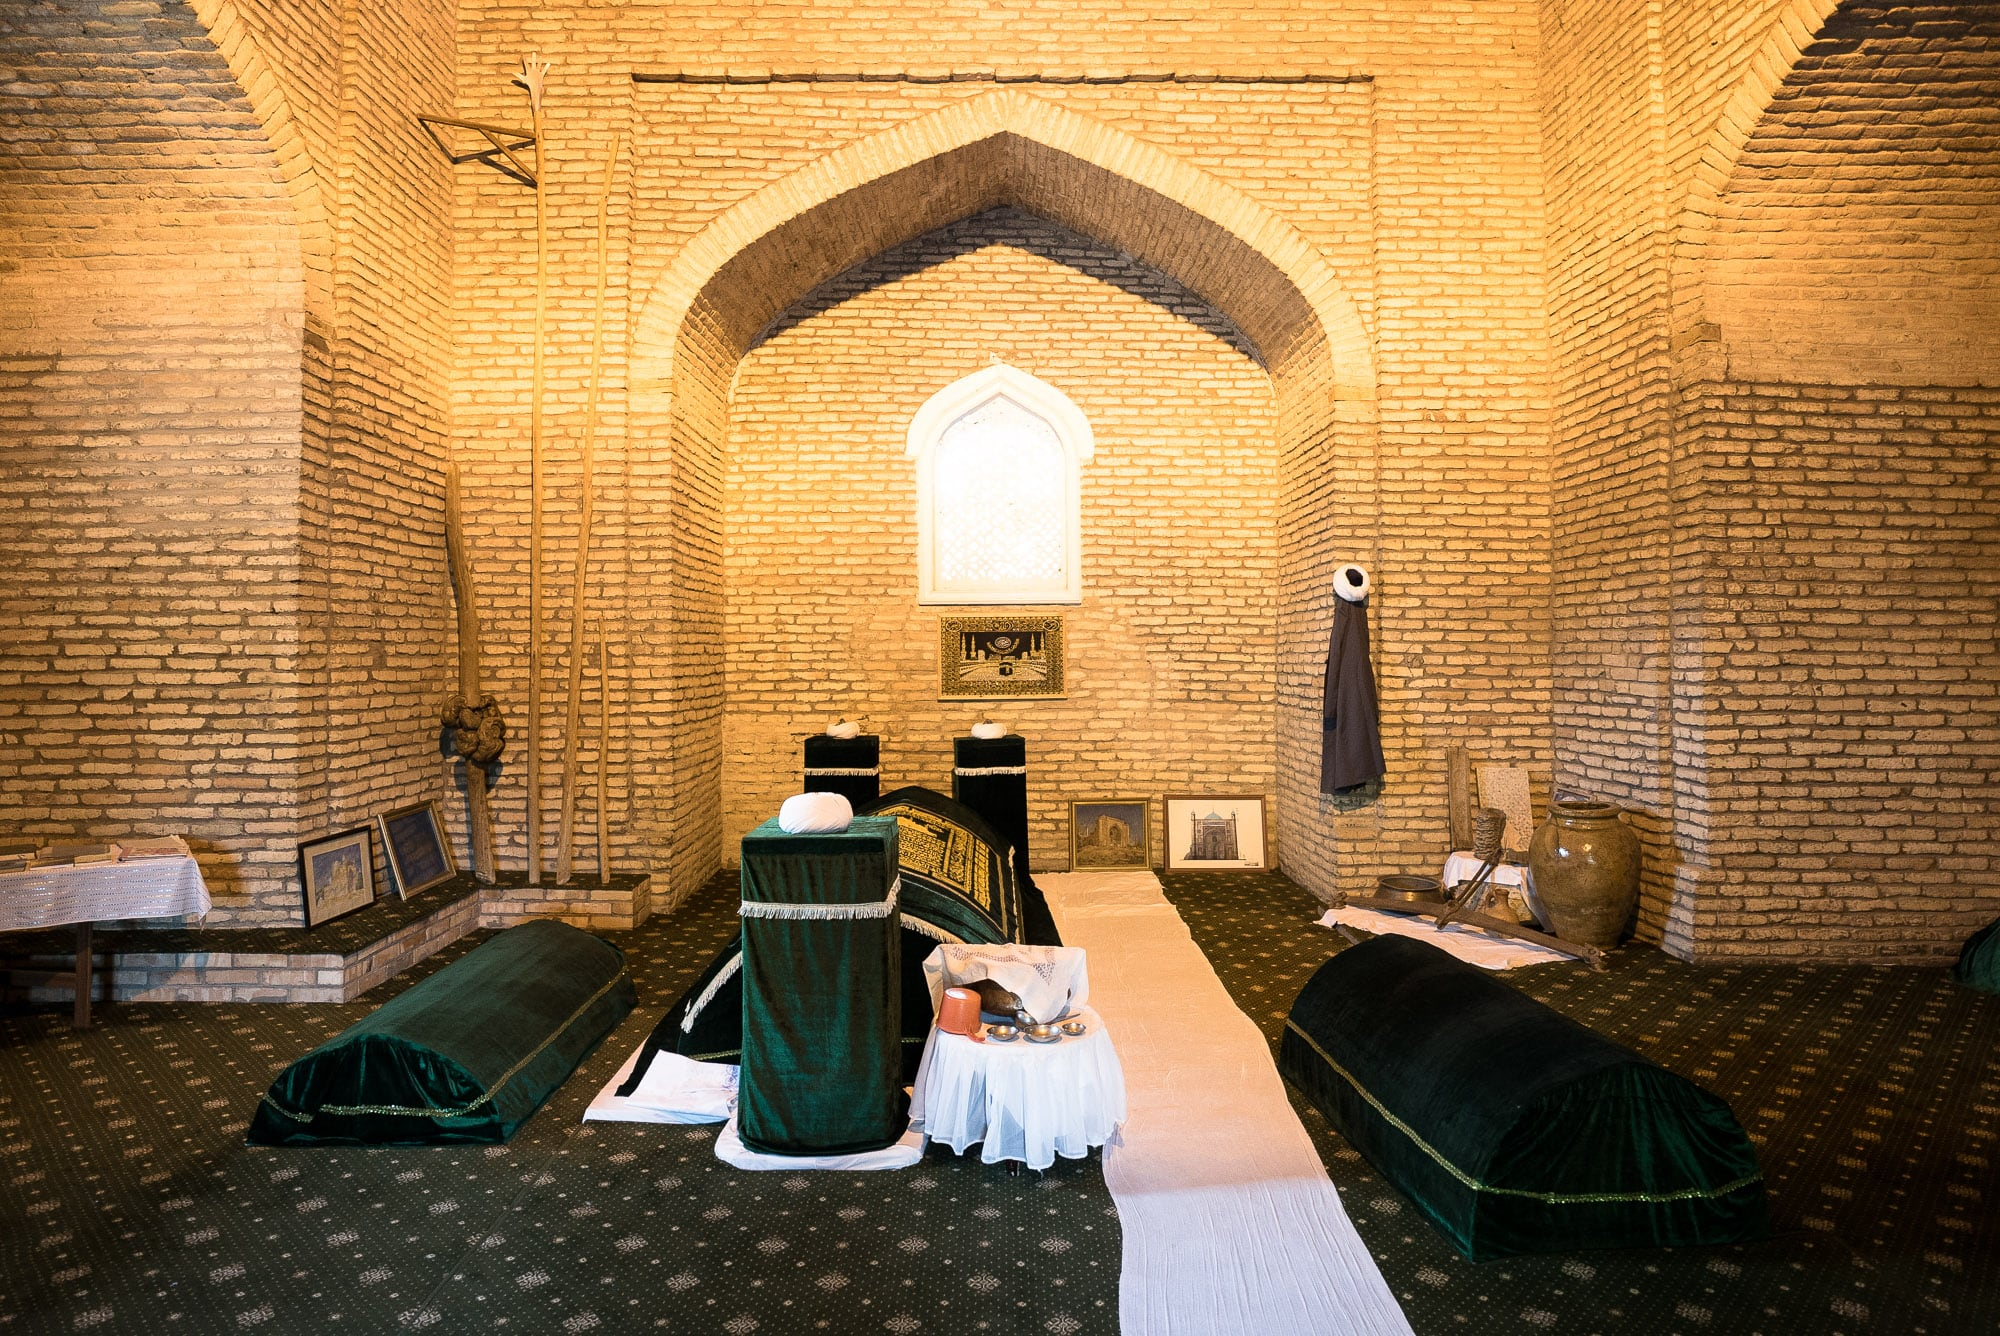 inside of Sheyh Zayniddin's mausoleum